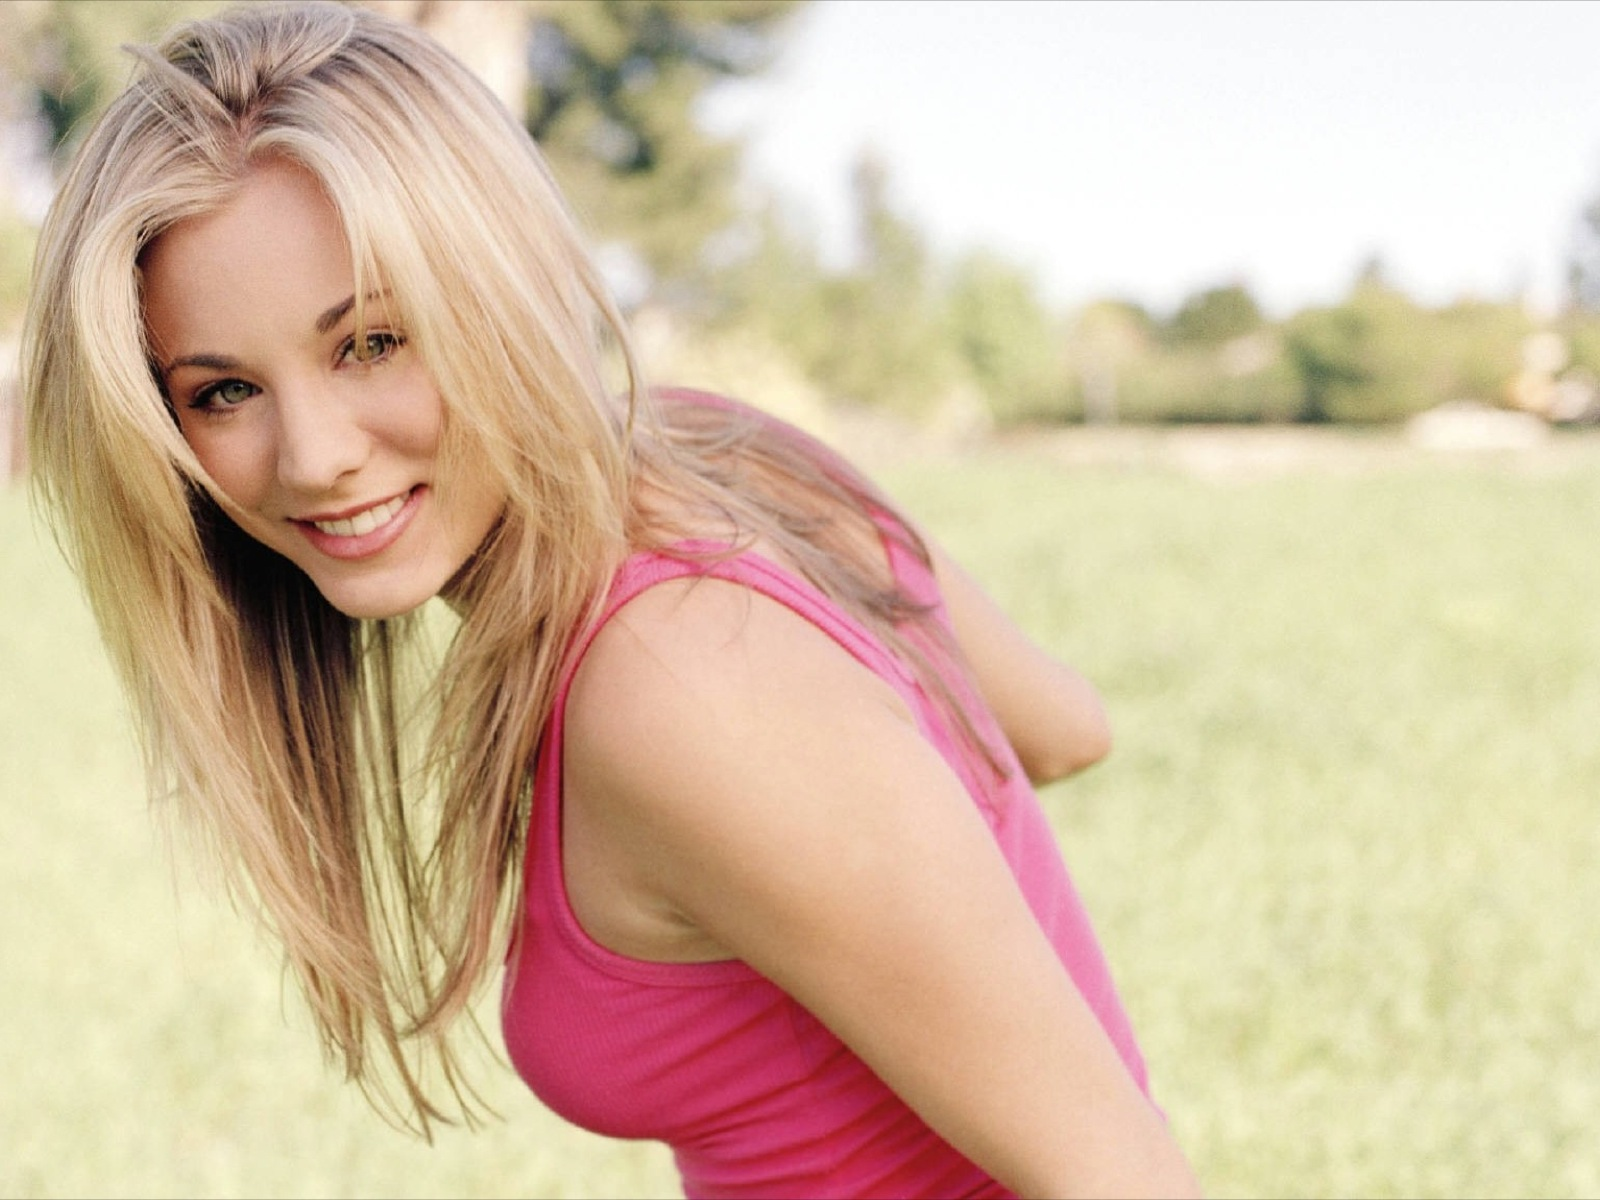 Kaley Cuoco Wallpaper Widescreen Top 43 Quality Cool 1600x1200